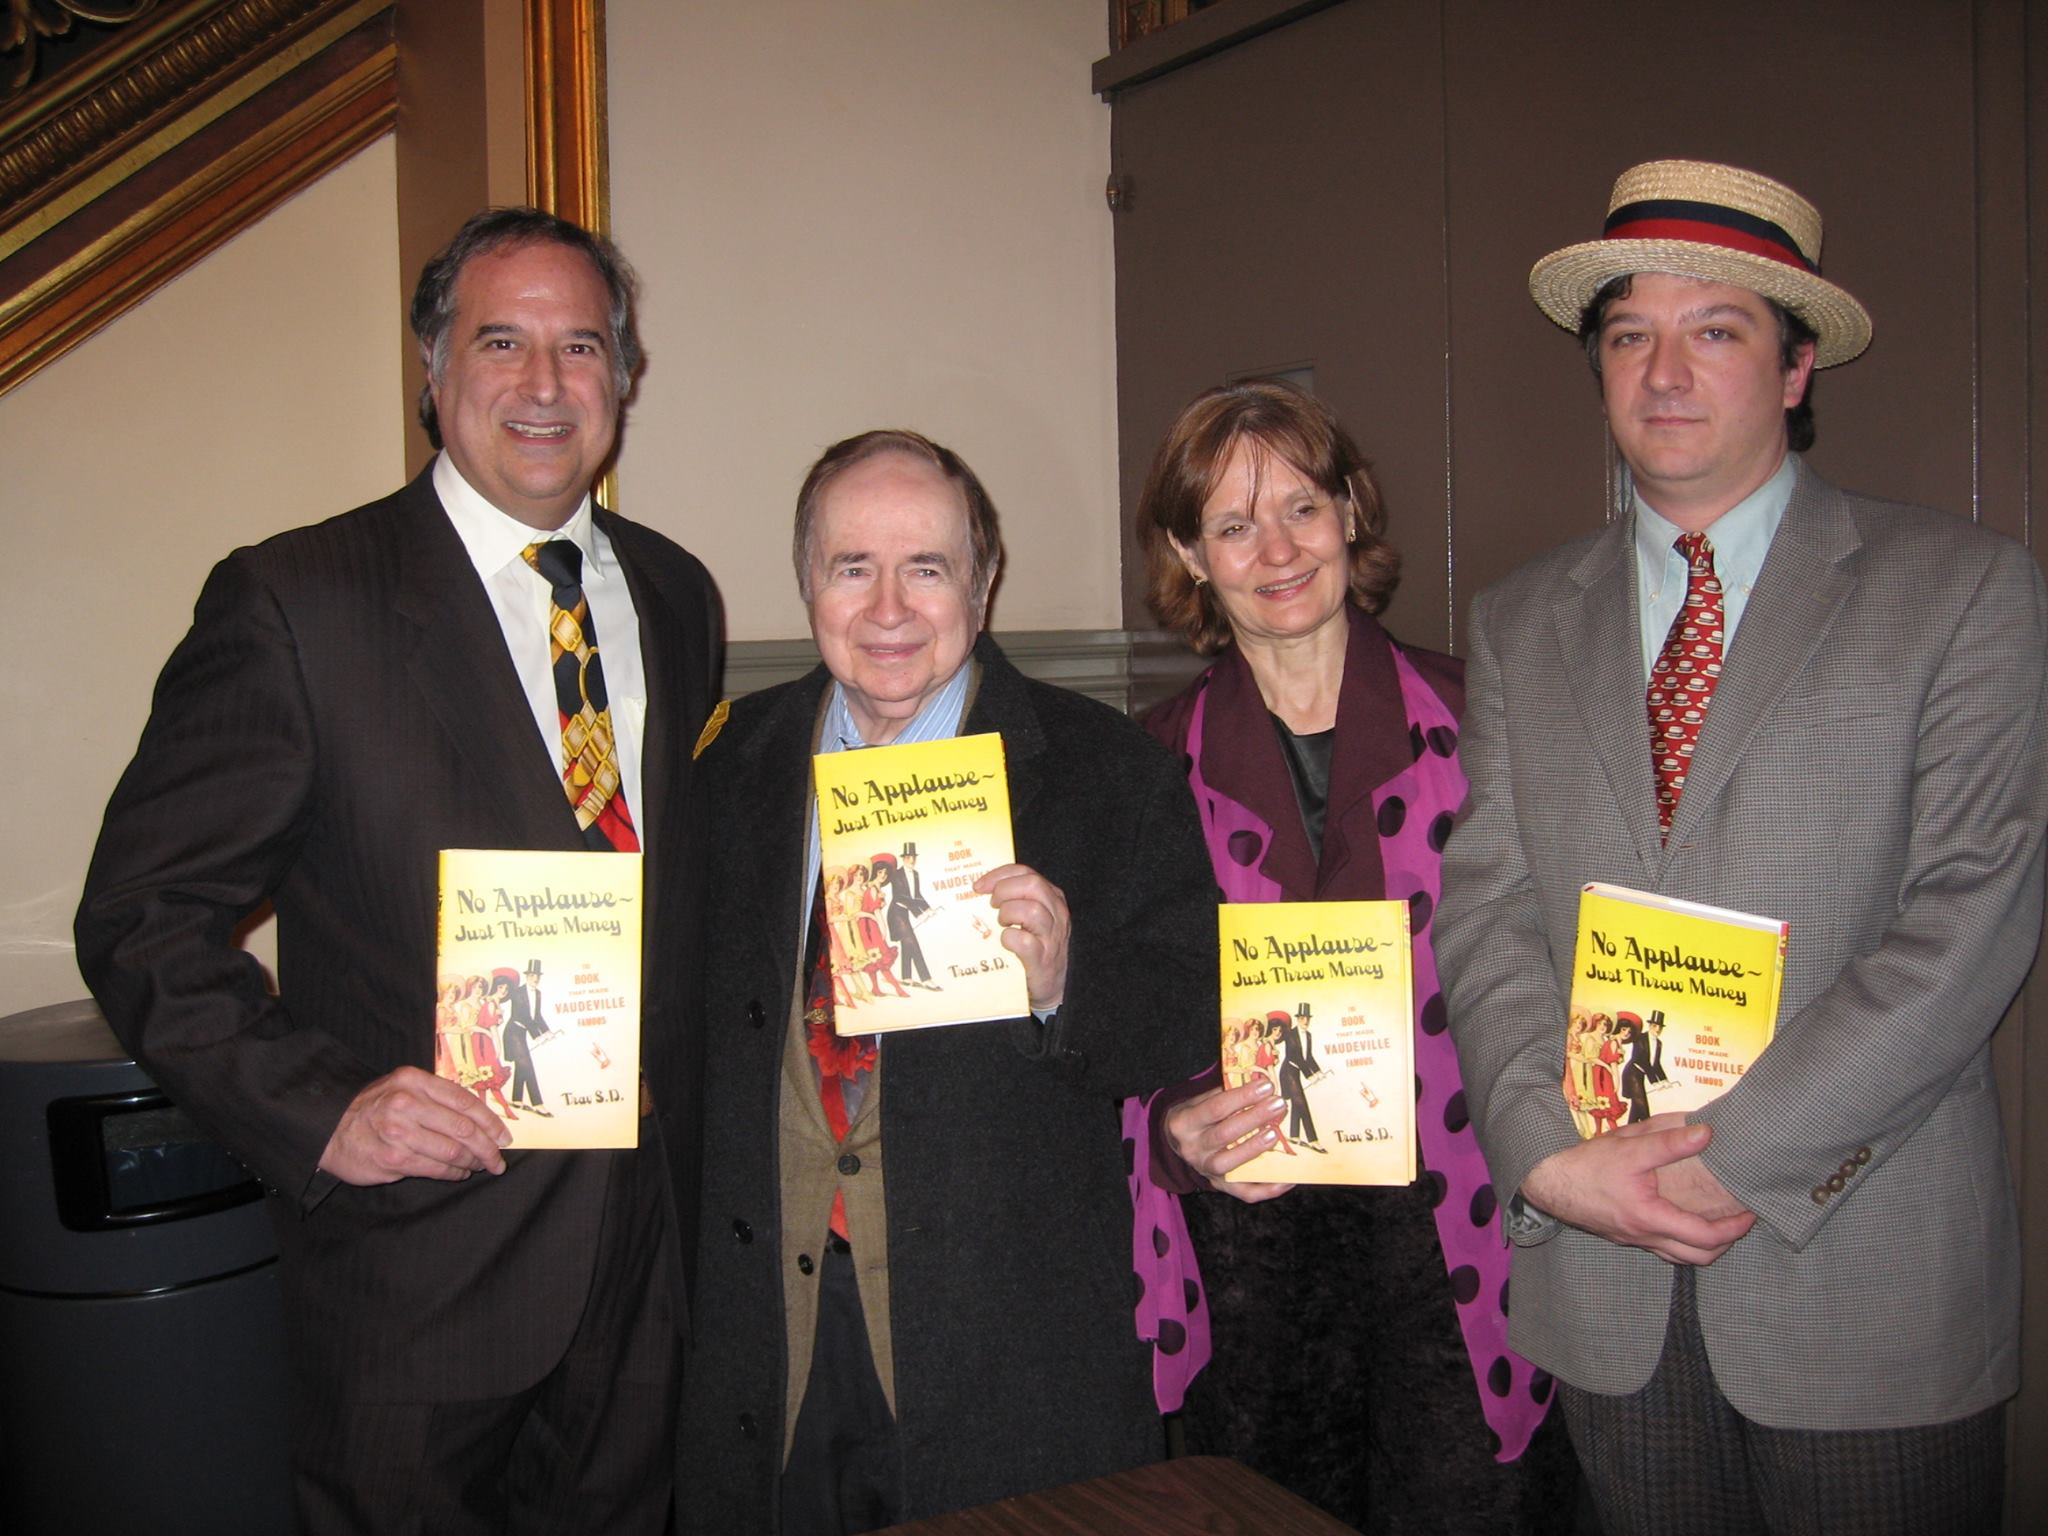 With Broadway producer Stewart F. Lane and Theatre Museum director Helen Guditis. Photo by Bonnie Comley